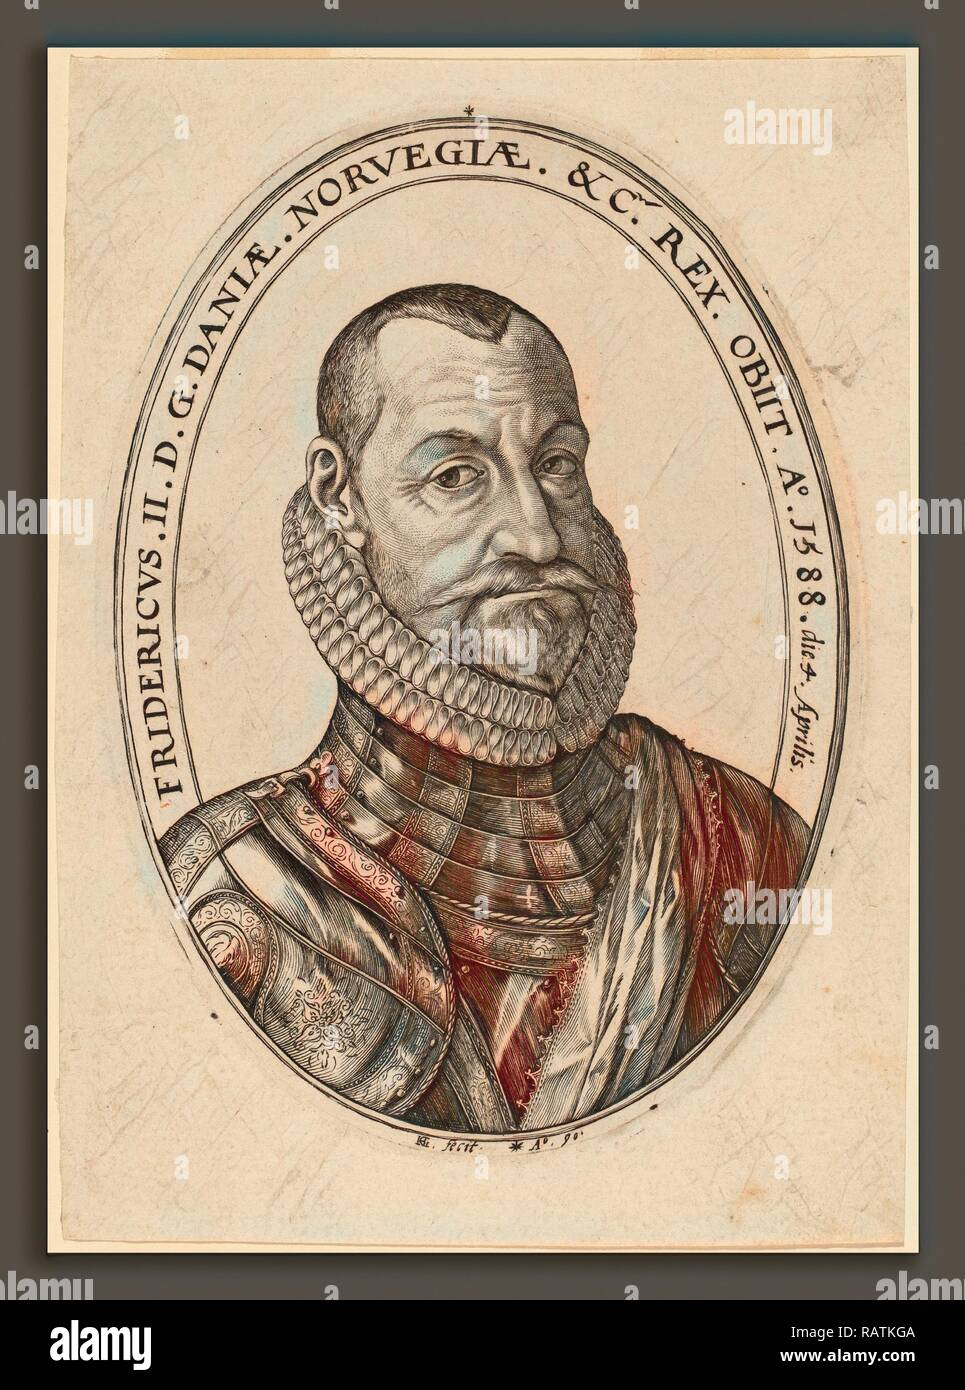 Hendrik Goltzius (Dutch, 1558 - 1617), Frederick II, 1590, engraving. Reimagined by Gibon. Classic art with a modern reimagined - Stock Image